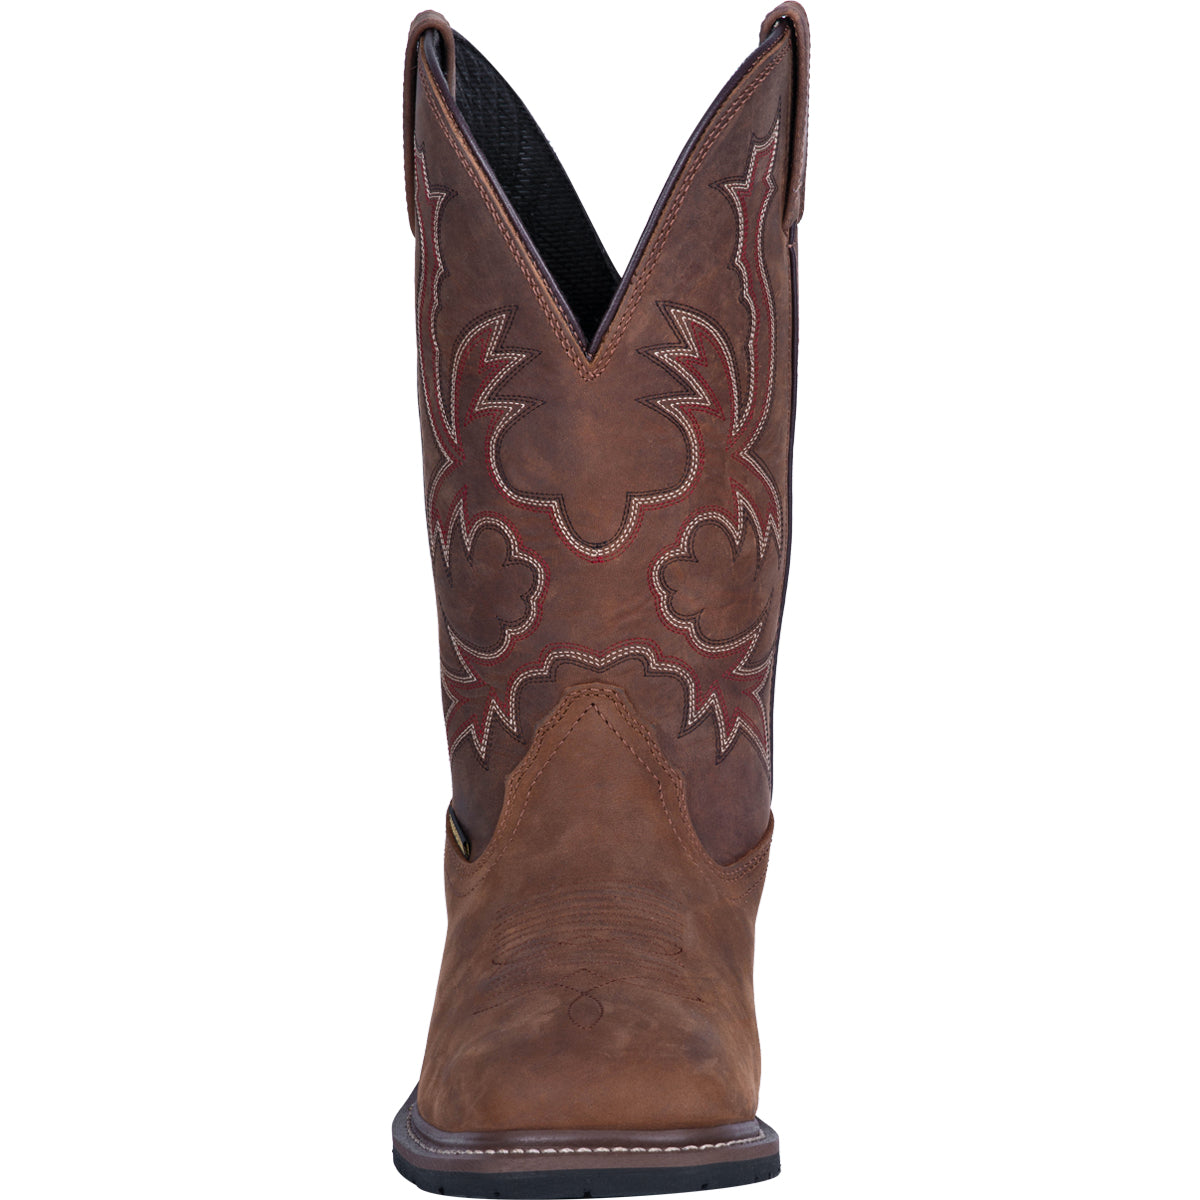 NOGALES WATERPROOF LEATHER BOOT 15521806450730